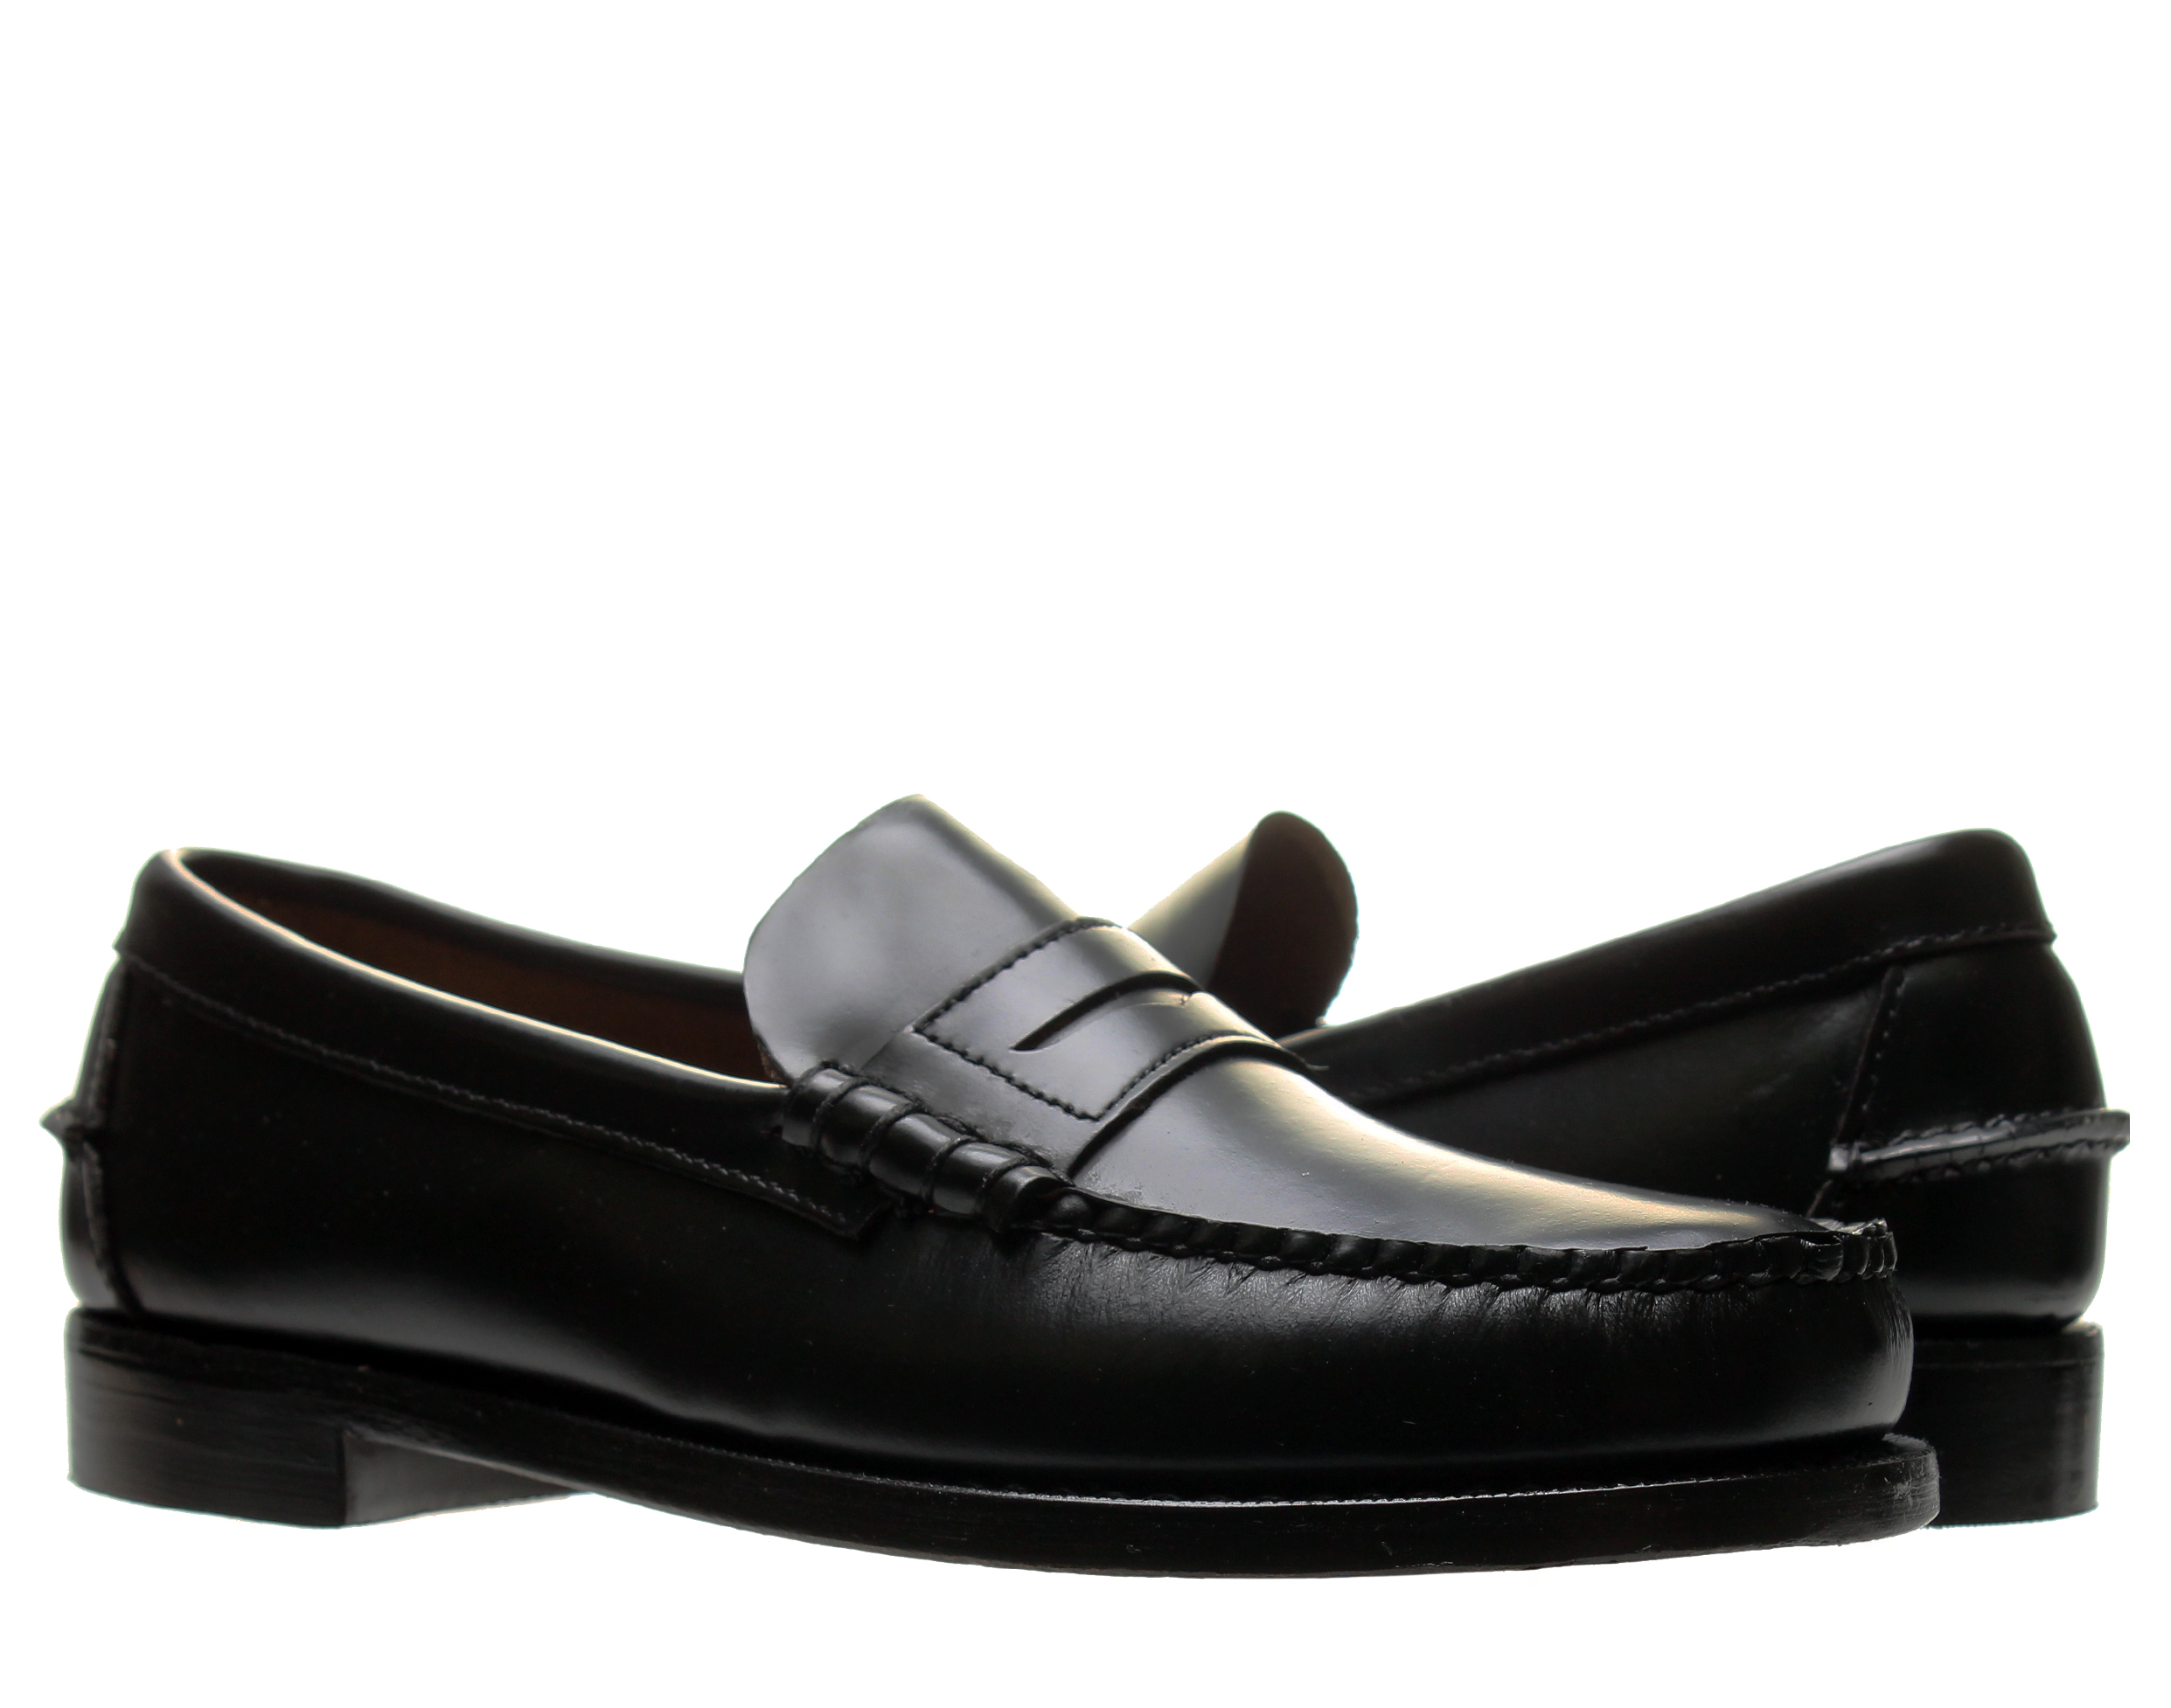 Sebago Classic Beef-Roll Penny Moc Black Men's Shoes B76671 by